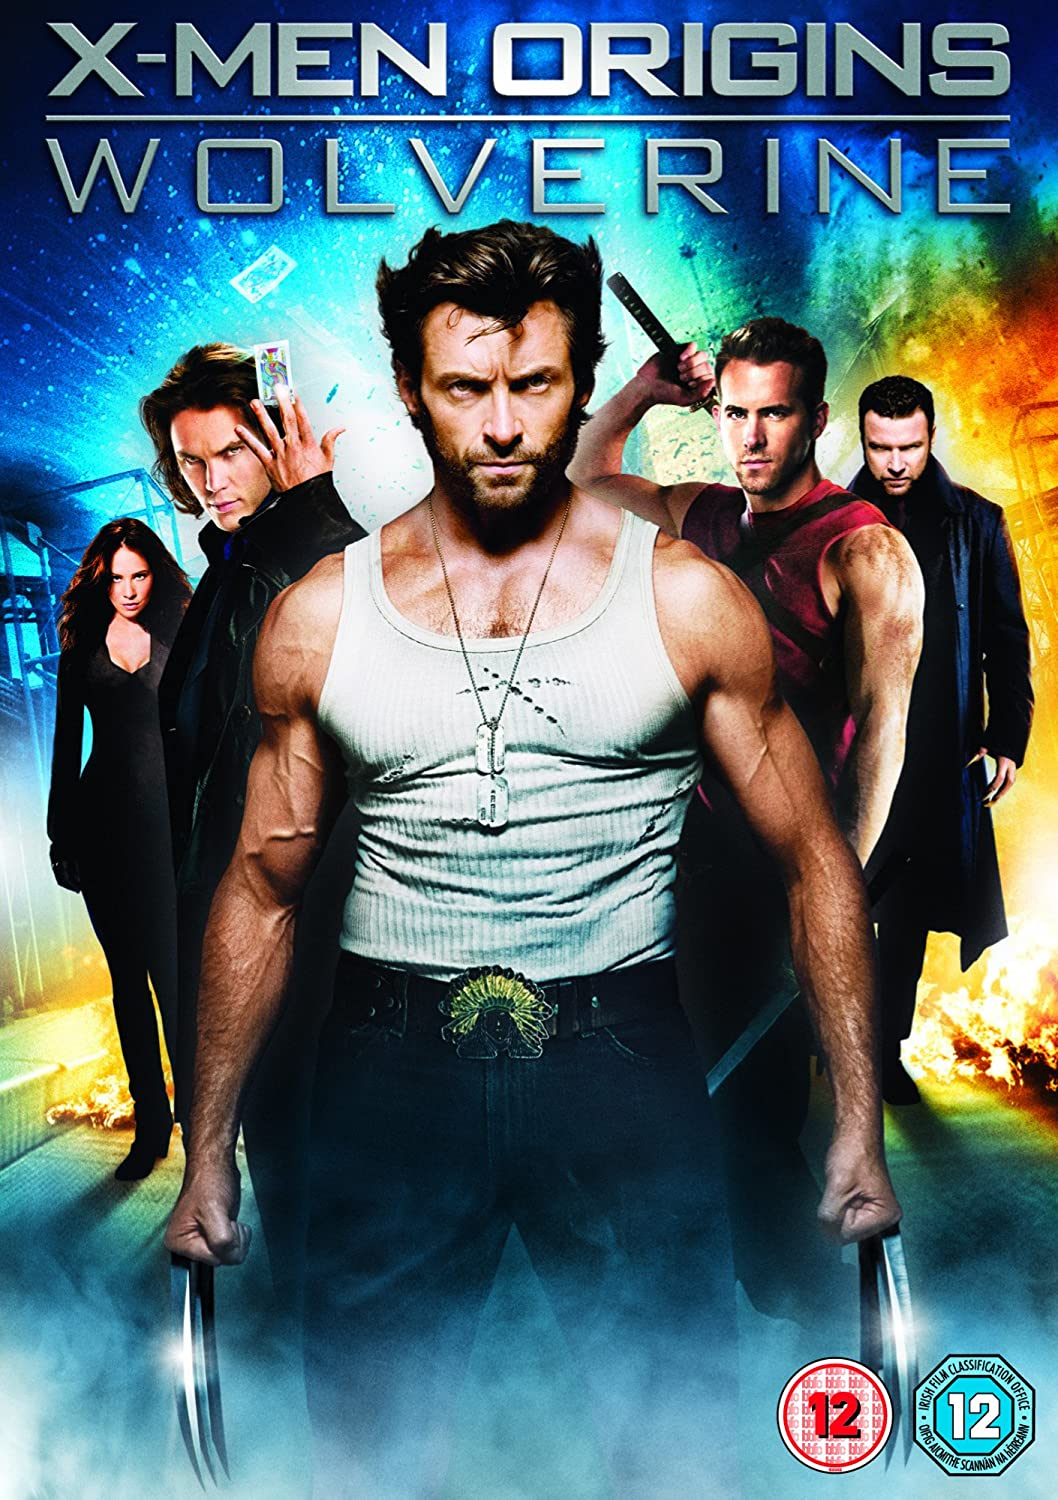 X-Men Origins Wolverine 2009 Dual Audio 720p BluRay [Hindi ORG + English] ESubs